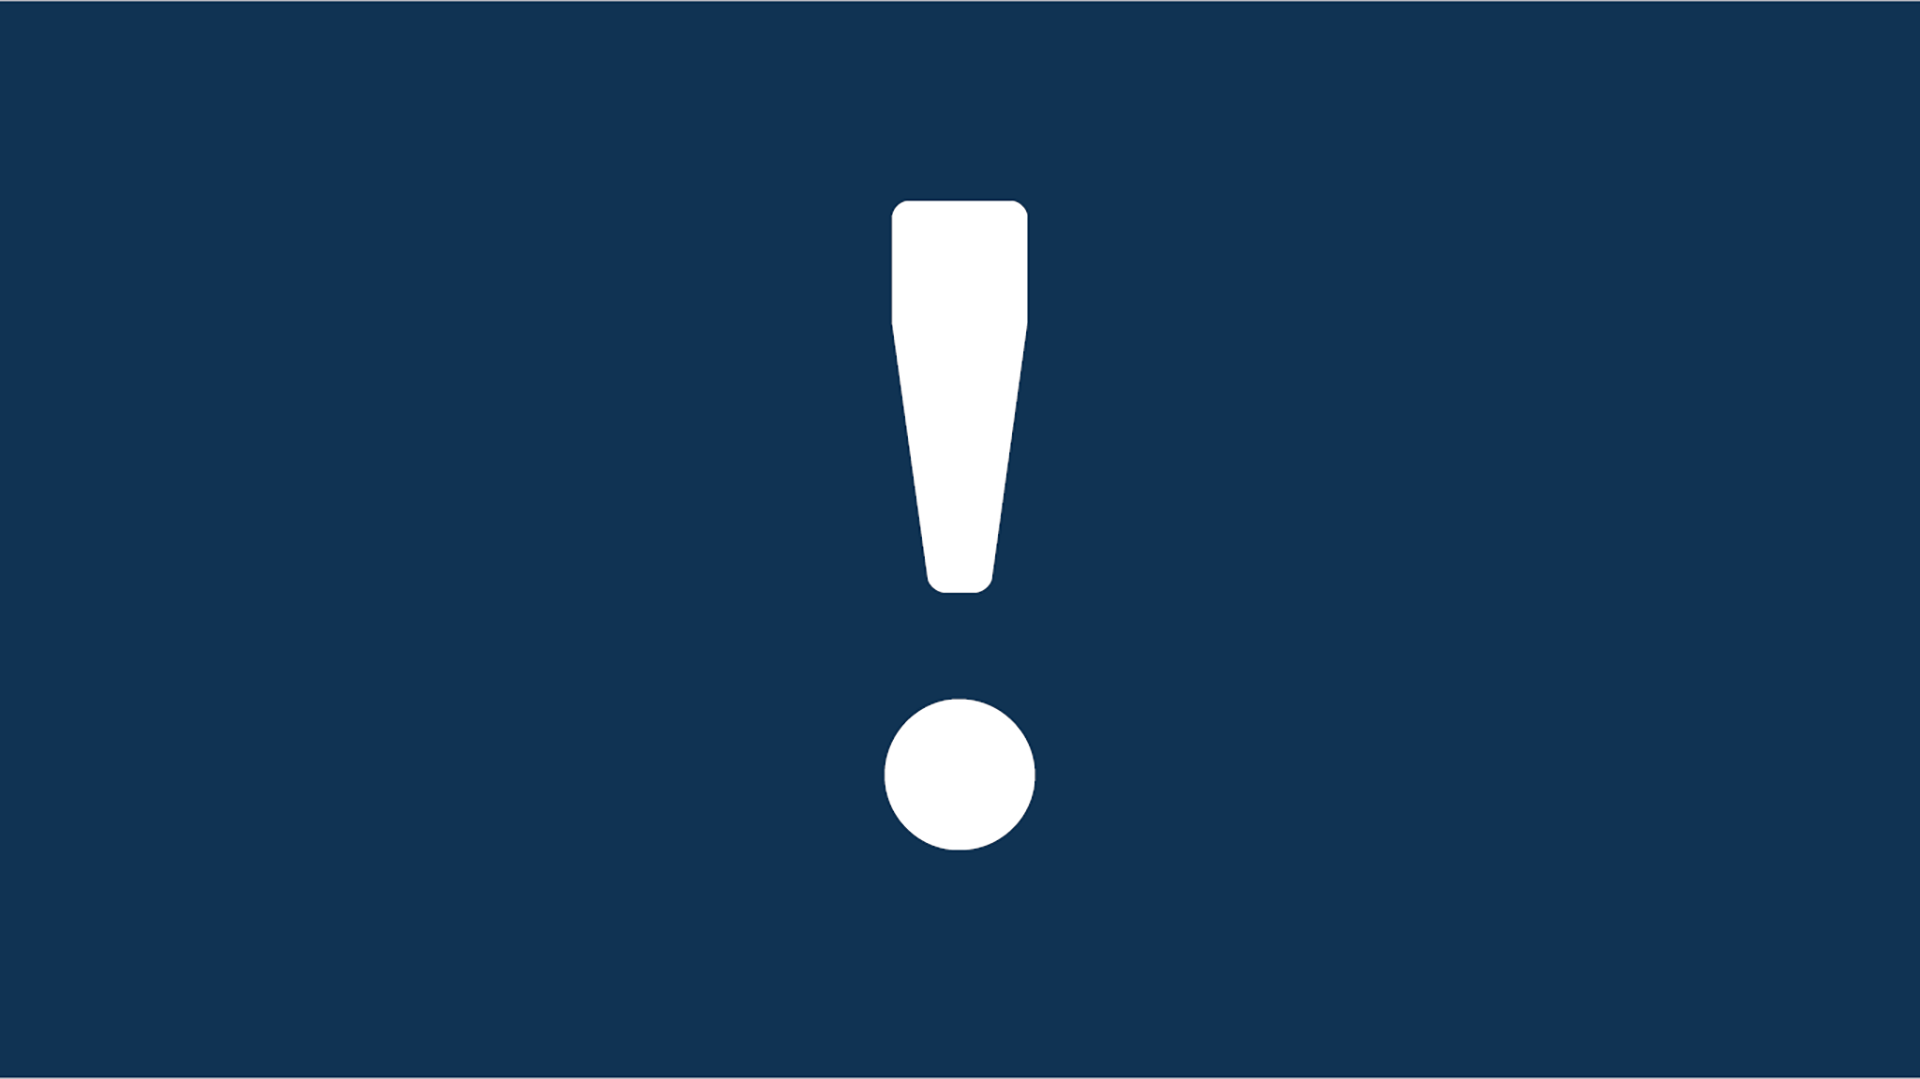 Banner of a white exclamation icon on a navy blue background.